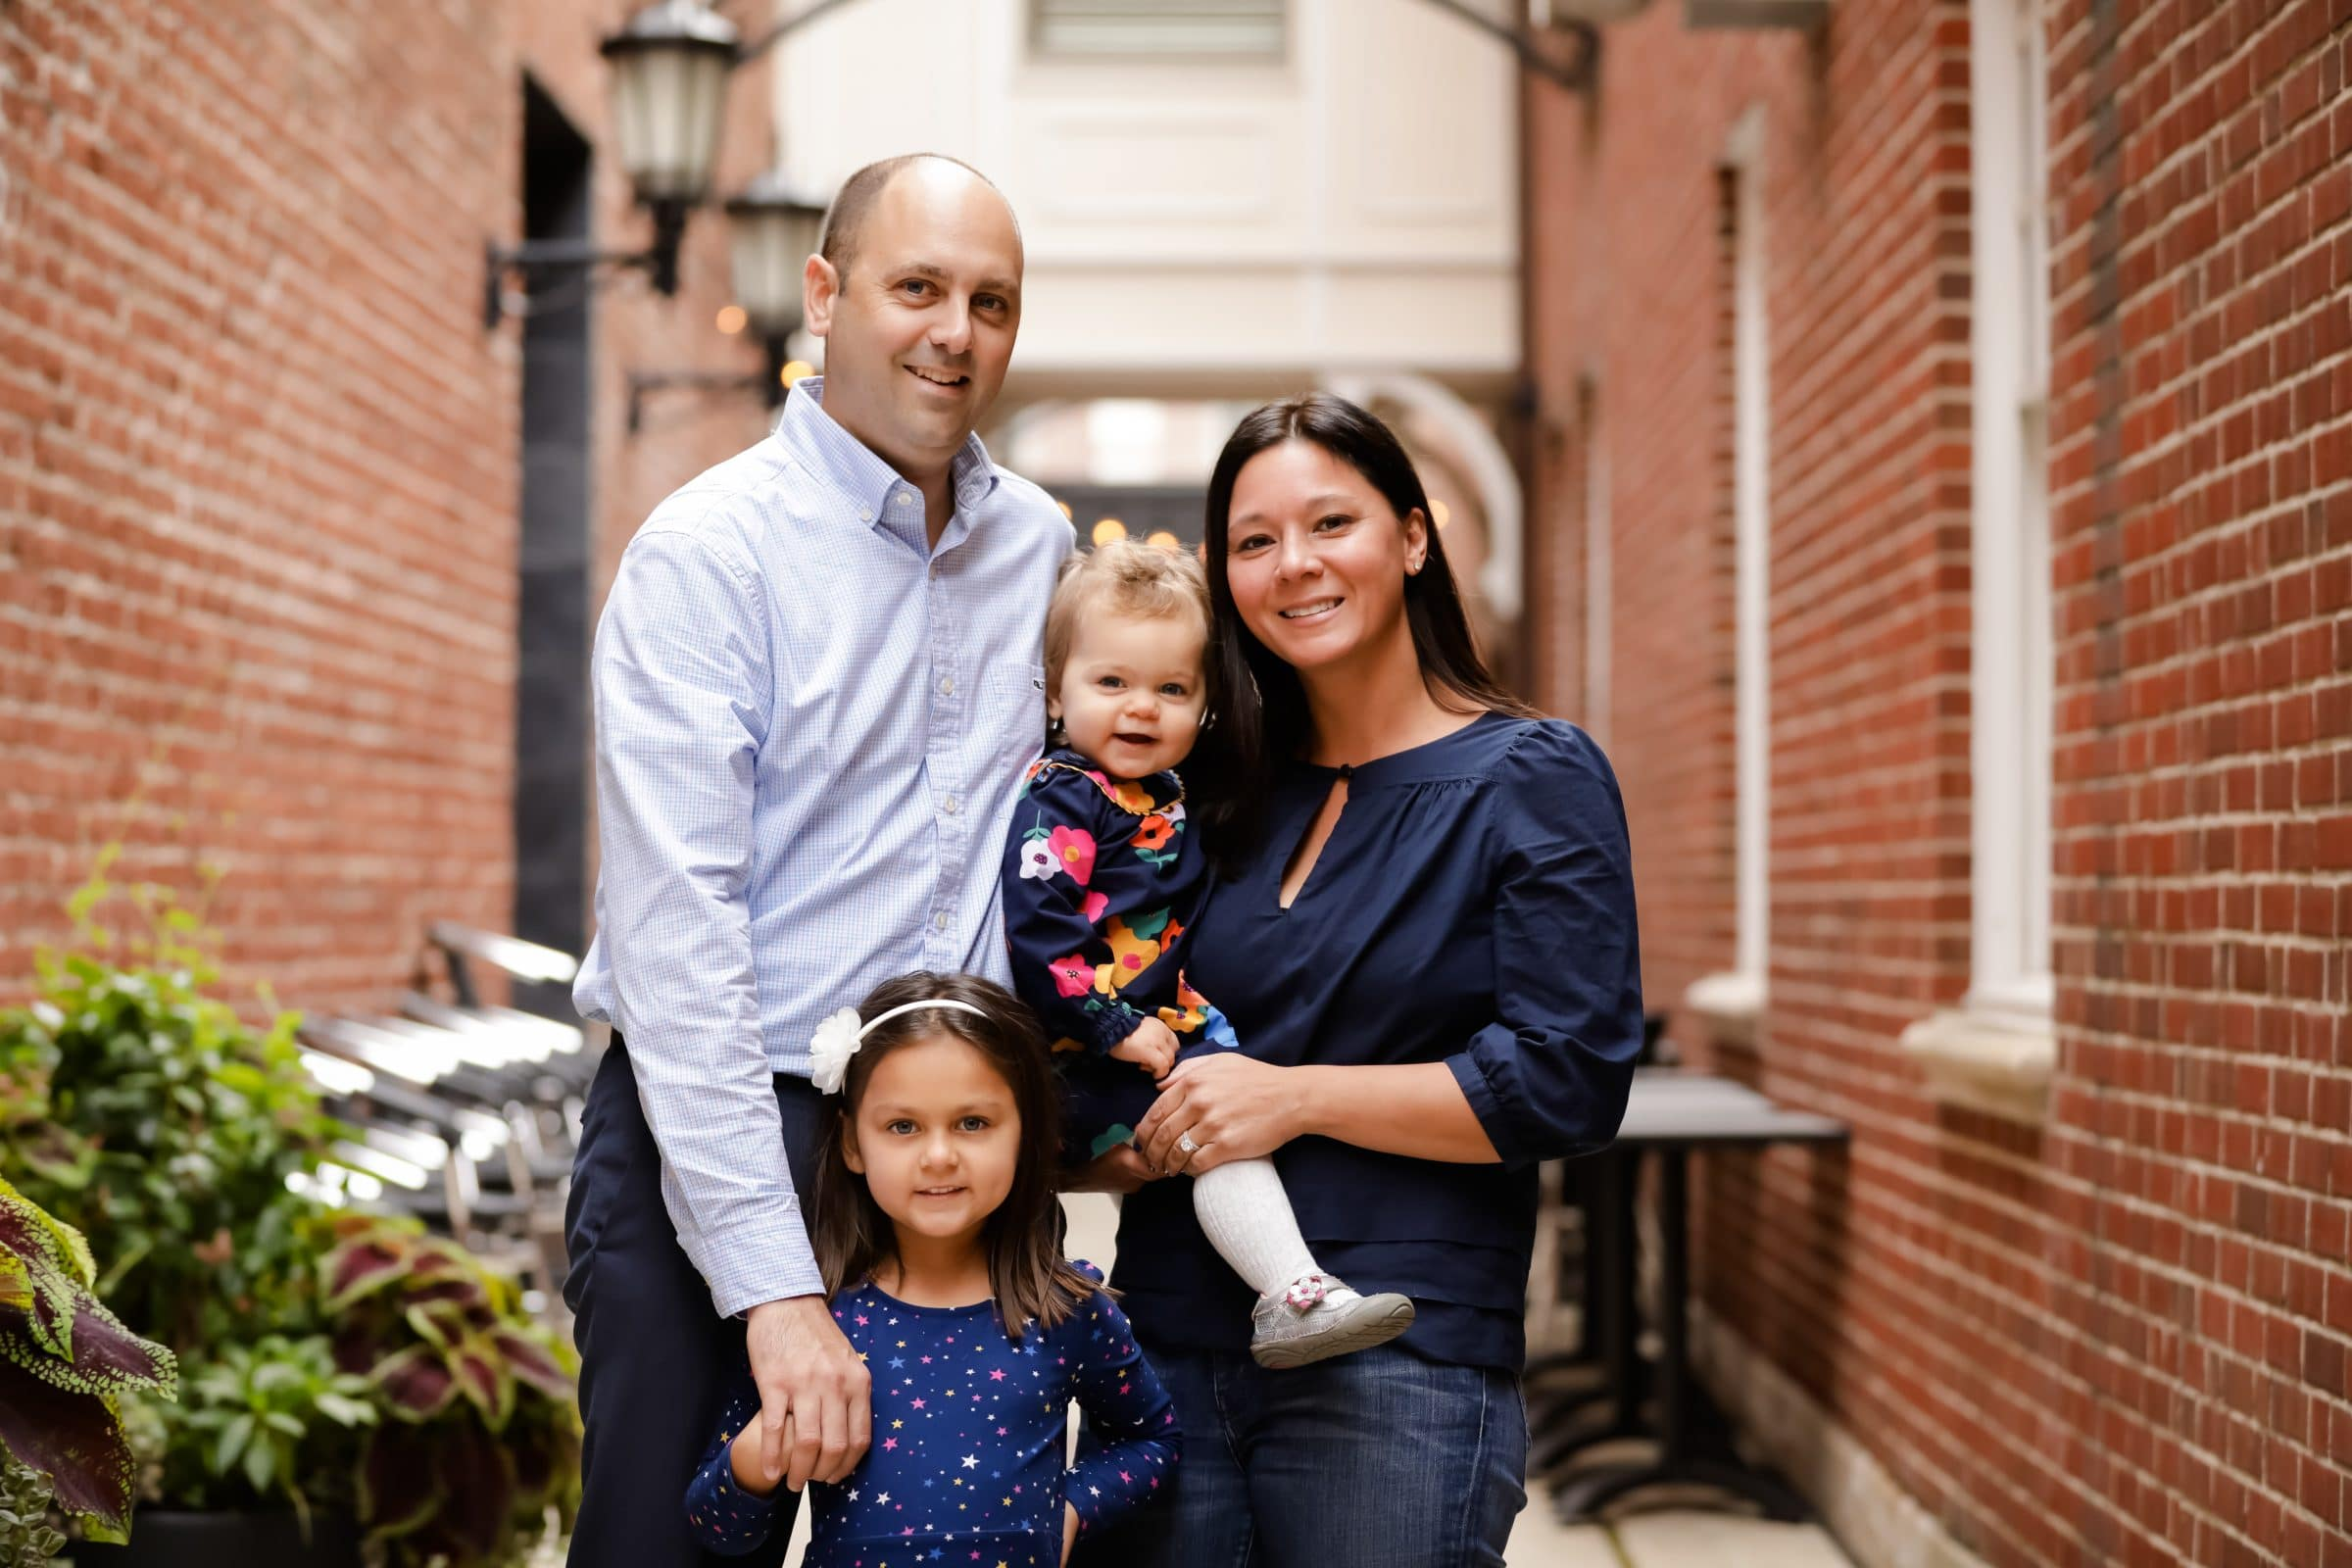 Hinsdale_Photographer_best_natural_lifestyle_outdoor_family_portrait_photography_by_Summer_Brader